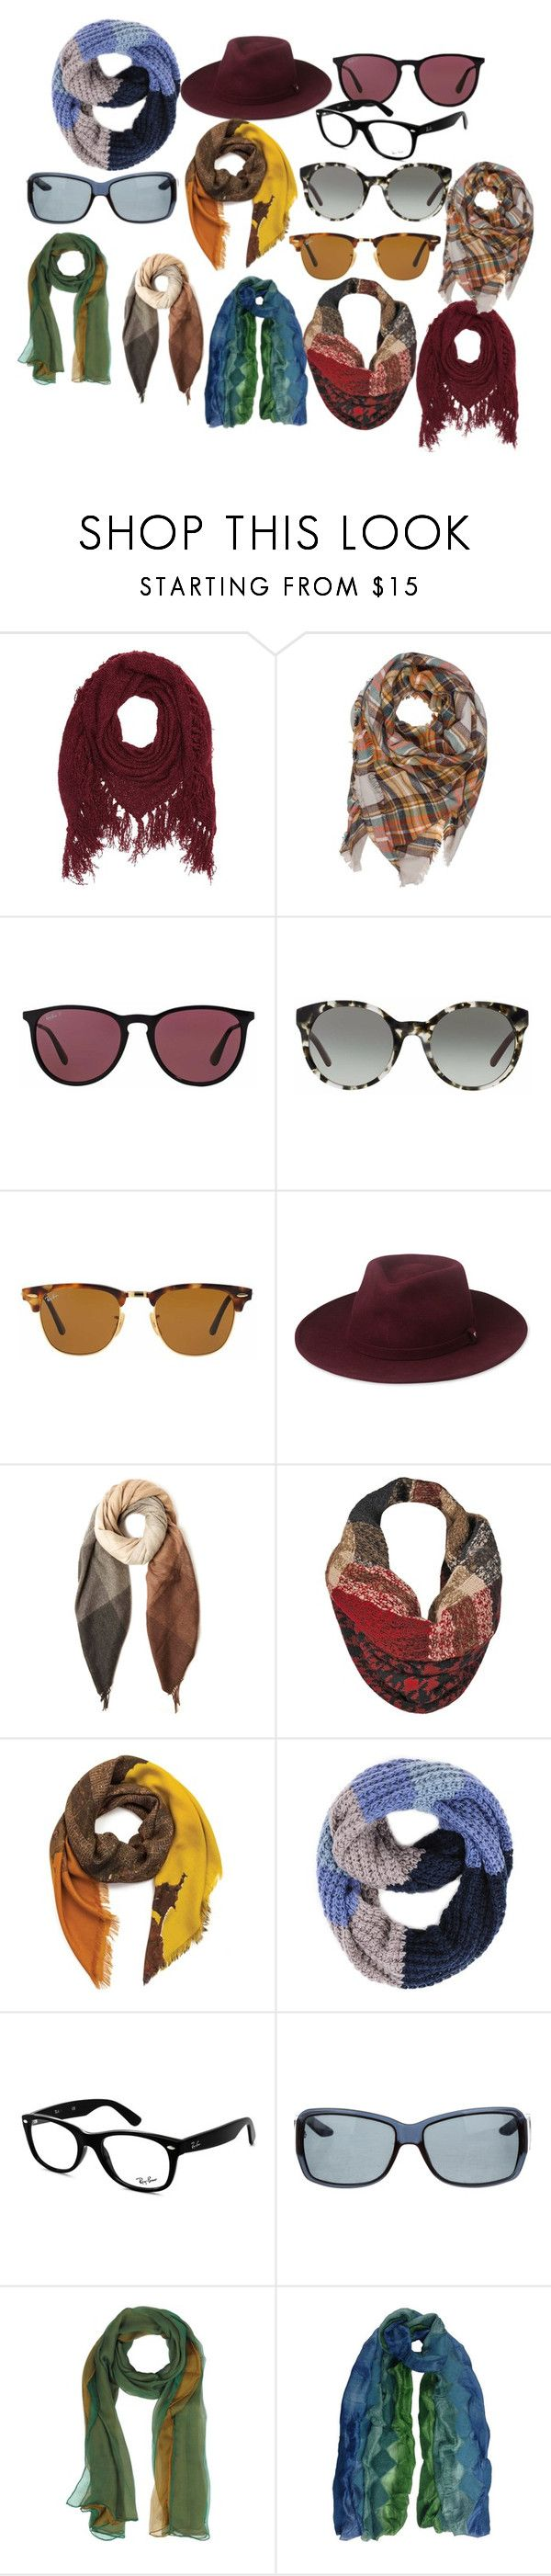 """""""шарфы"""" by artemia-13 on Polyvore featuring мода, Charlotte Russe, Ray-Ban, Tory Burch, Whistles, Paul Smith, Black Rivet, Paula Bianco, Christian Dior и Laura Biagiotti"""